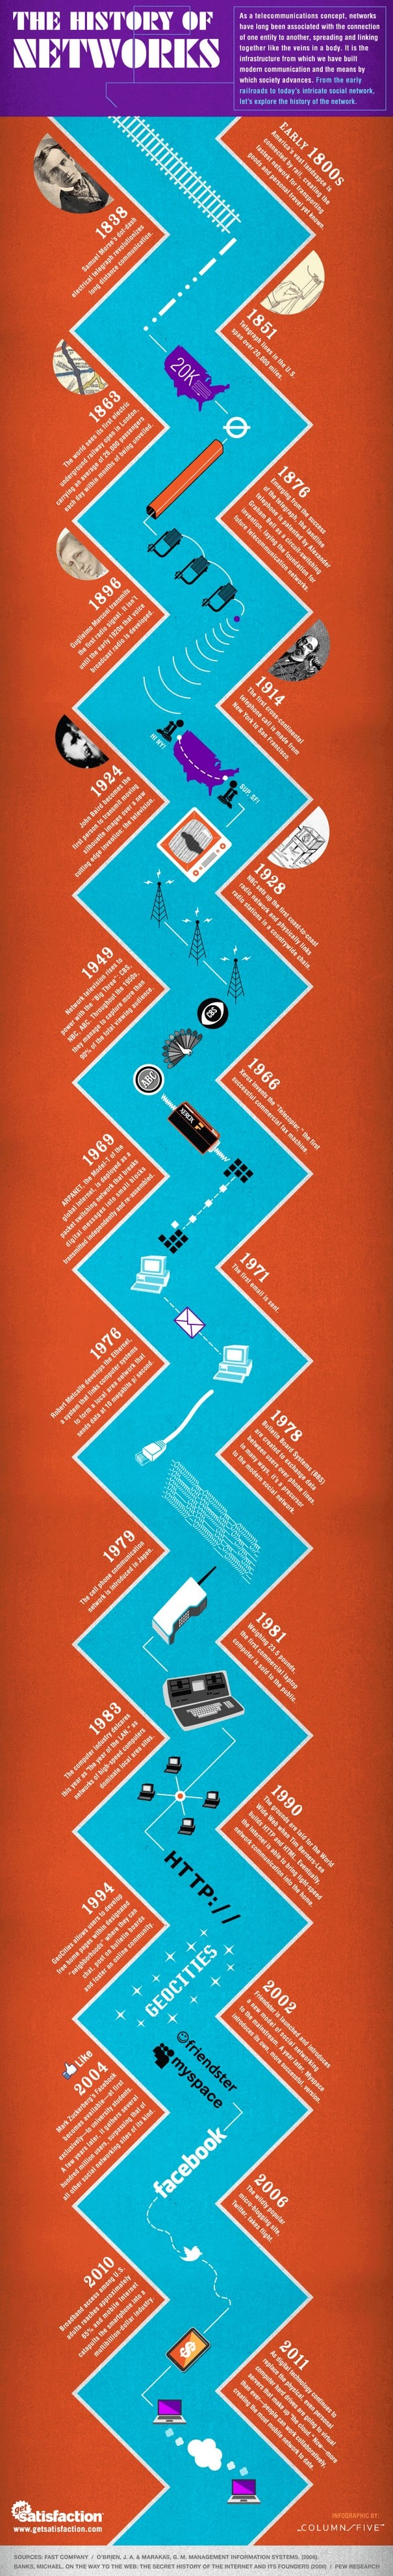 Infographic The History of Networks